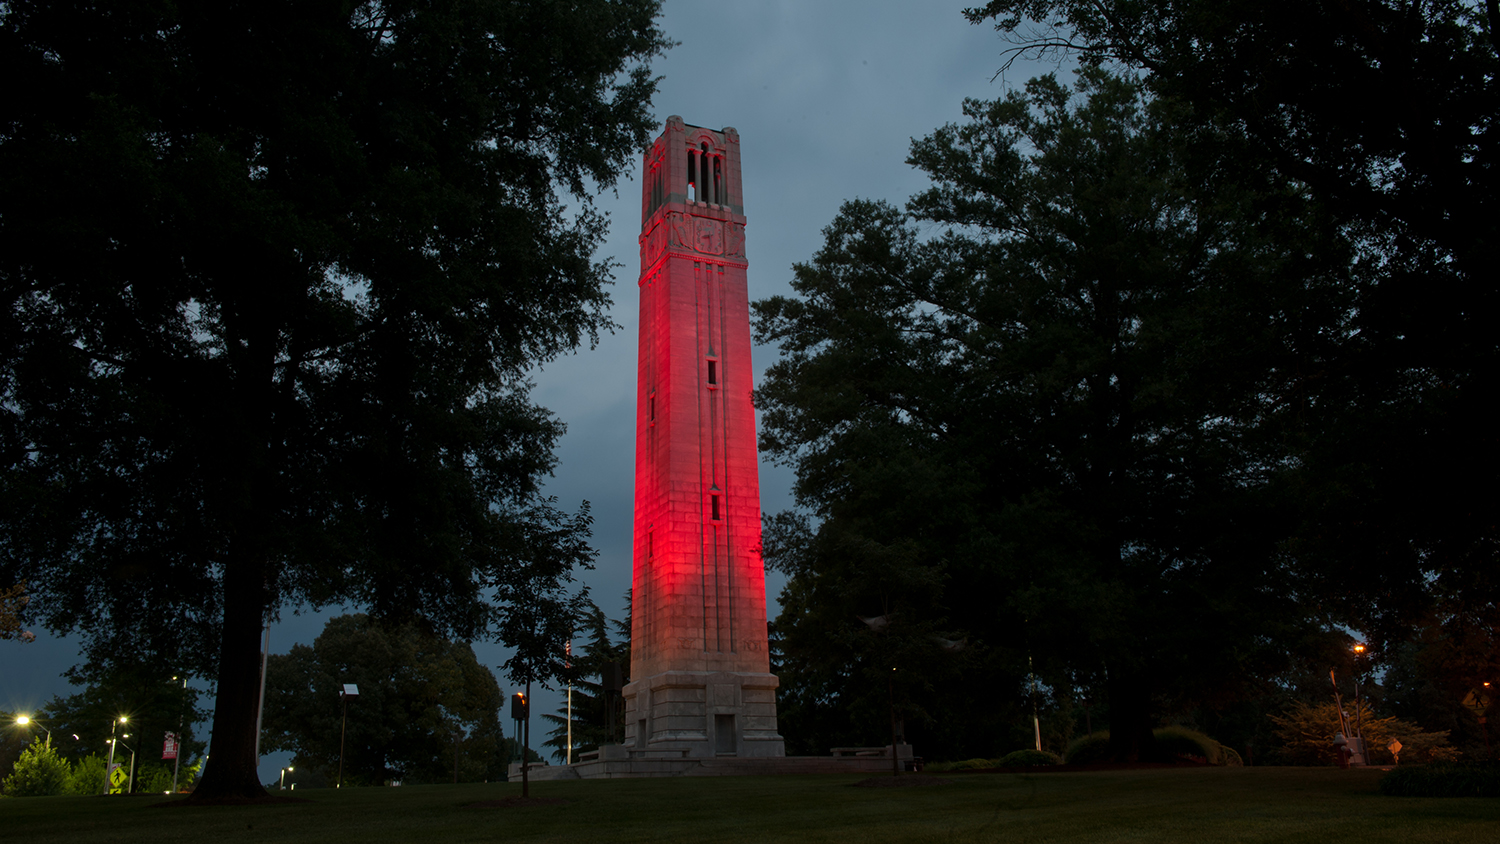 Bell tower with red lighting